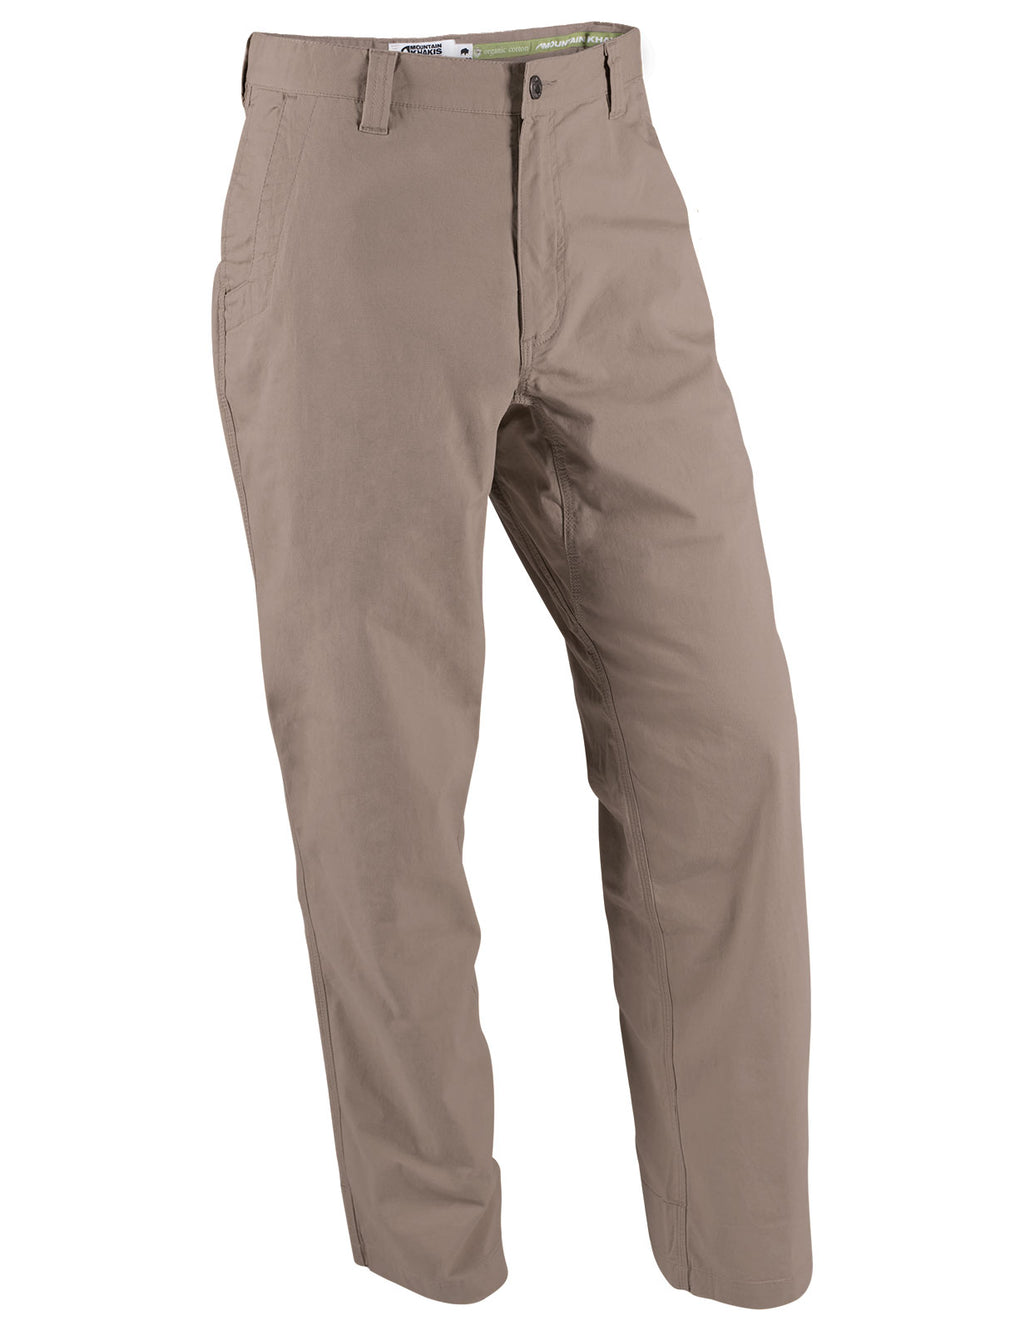 Front view of the Mountain Khakis All Mountain Pant in relaxed fit and firma brown color